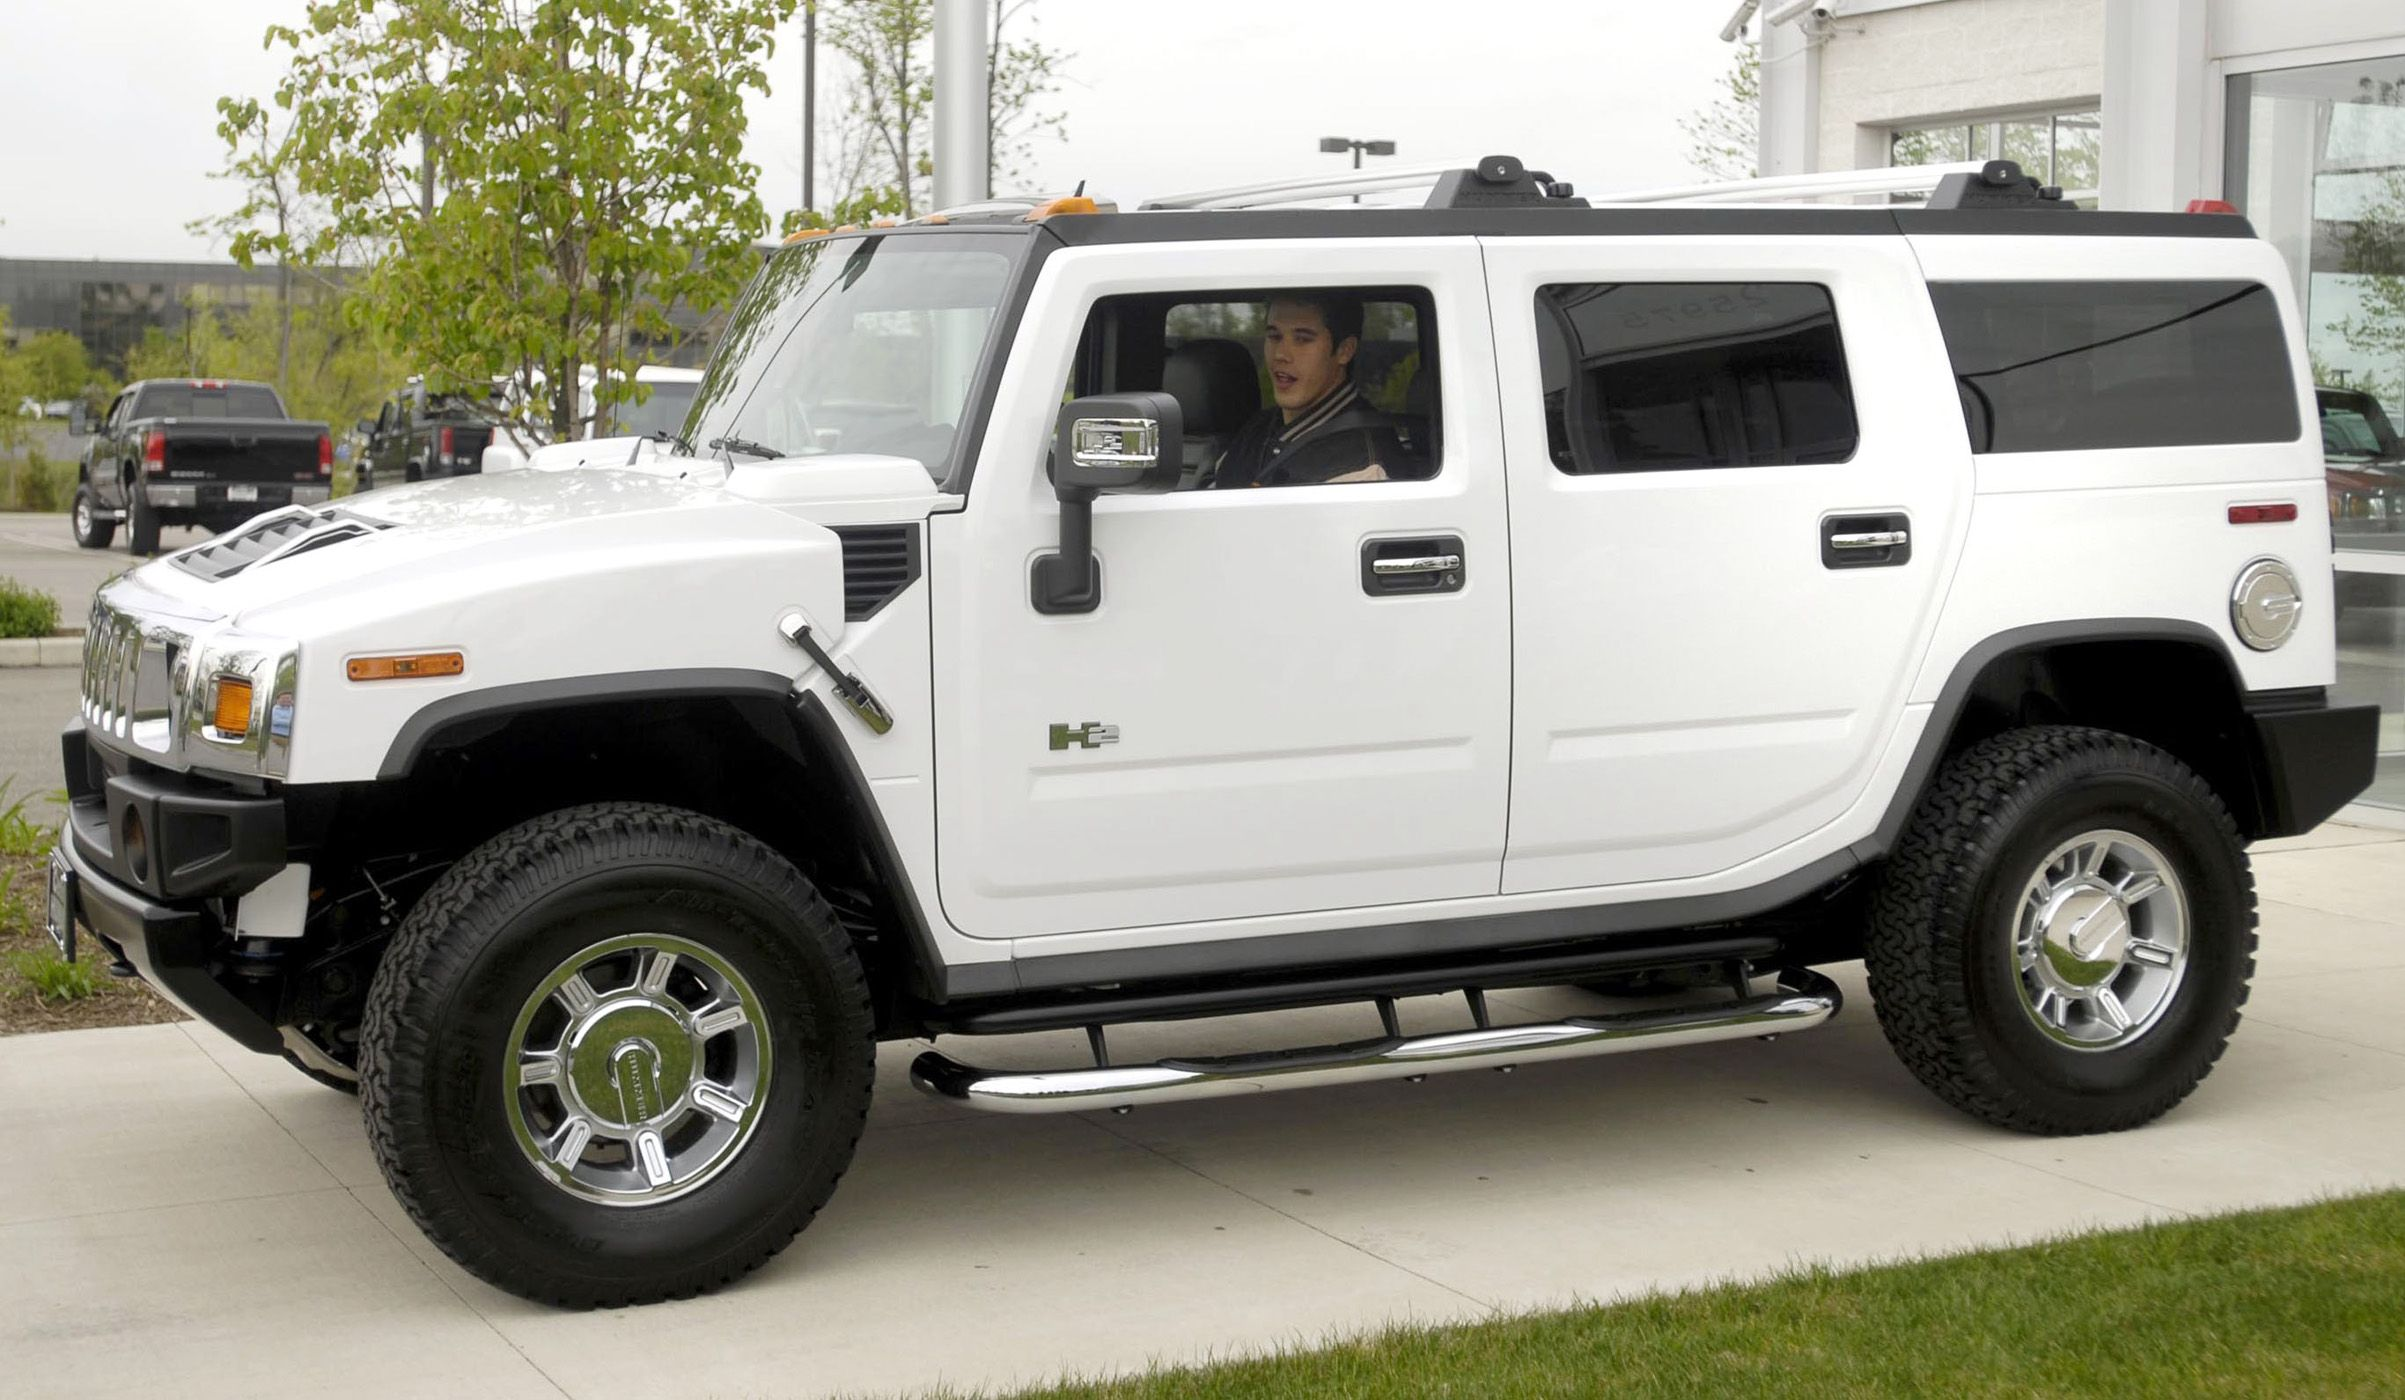 2014 hummer h2 white cars pinterest hummer h2 hummer and hummer cars. Black Bedroom Furniture Sets. Home Design Ideas